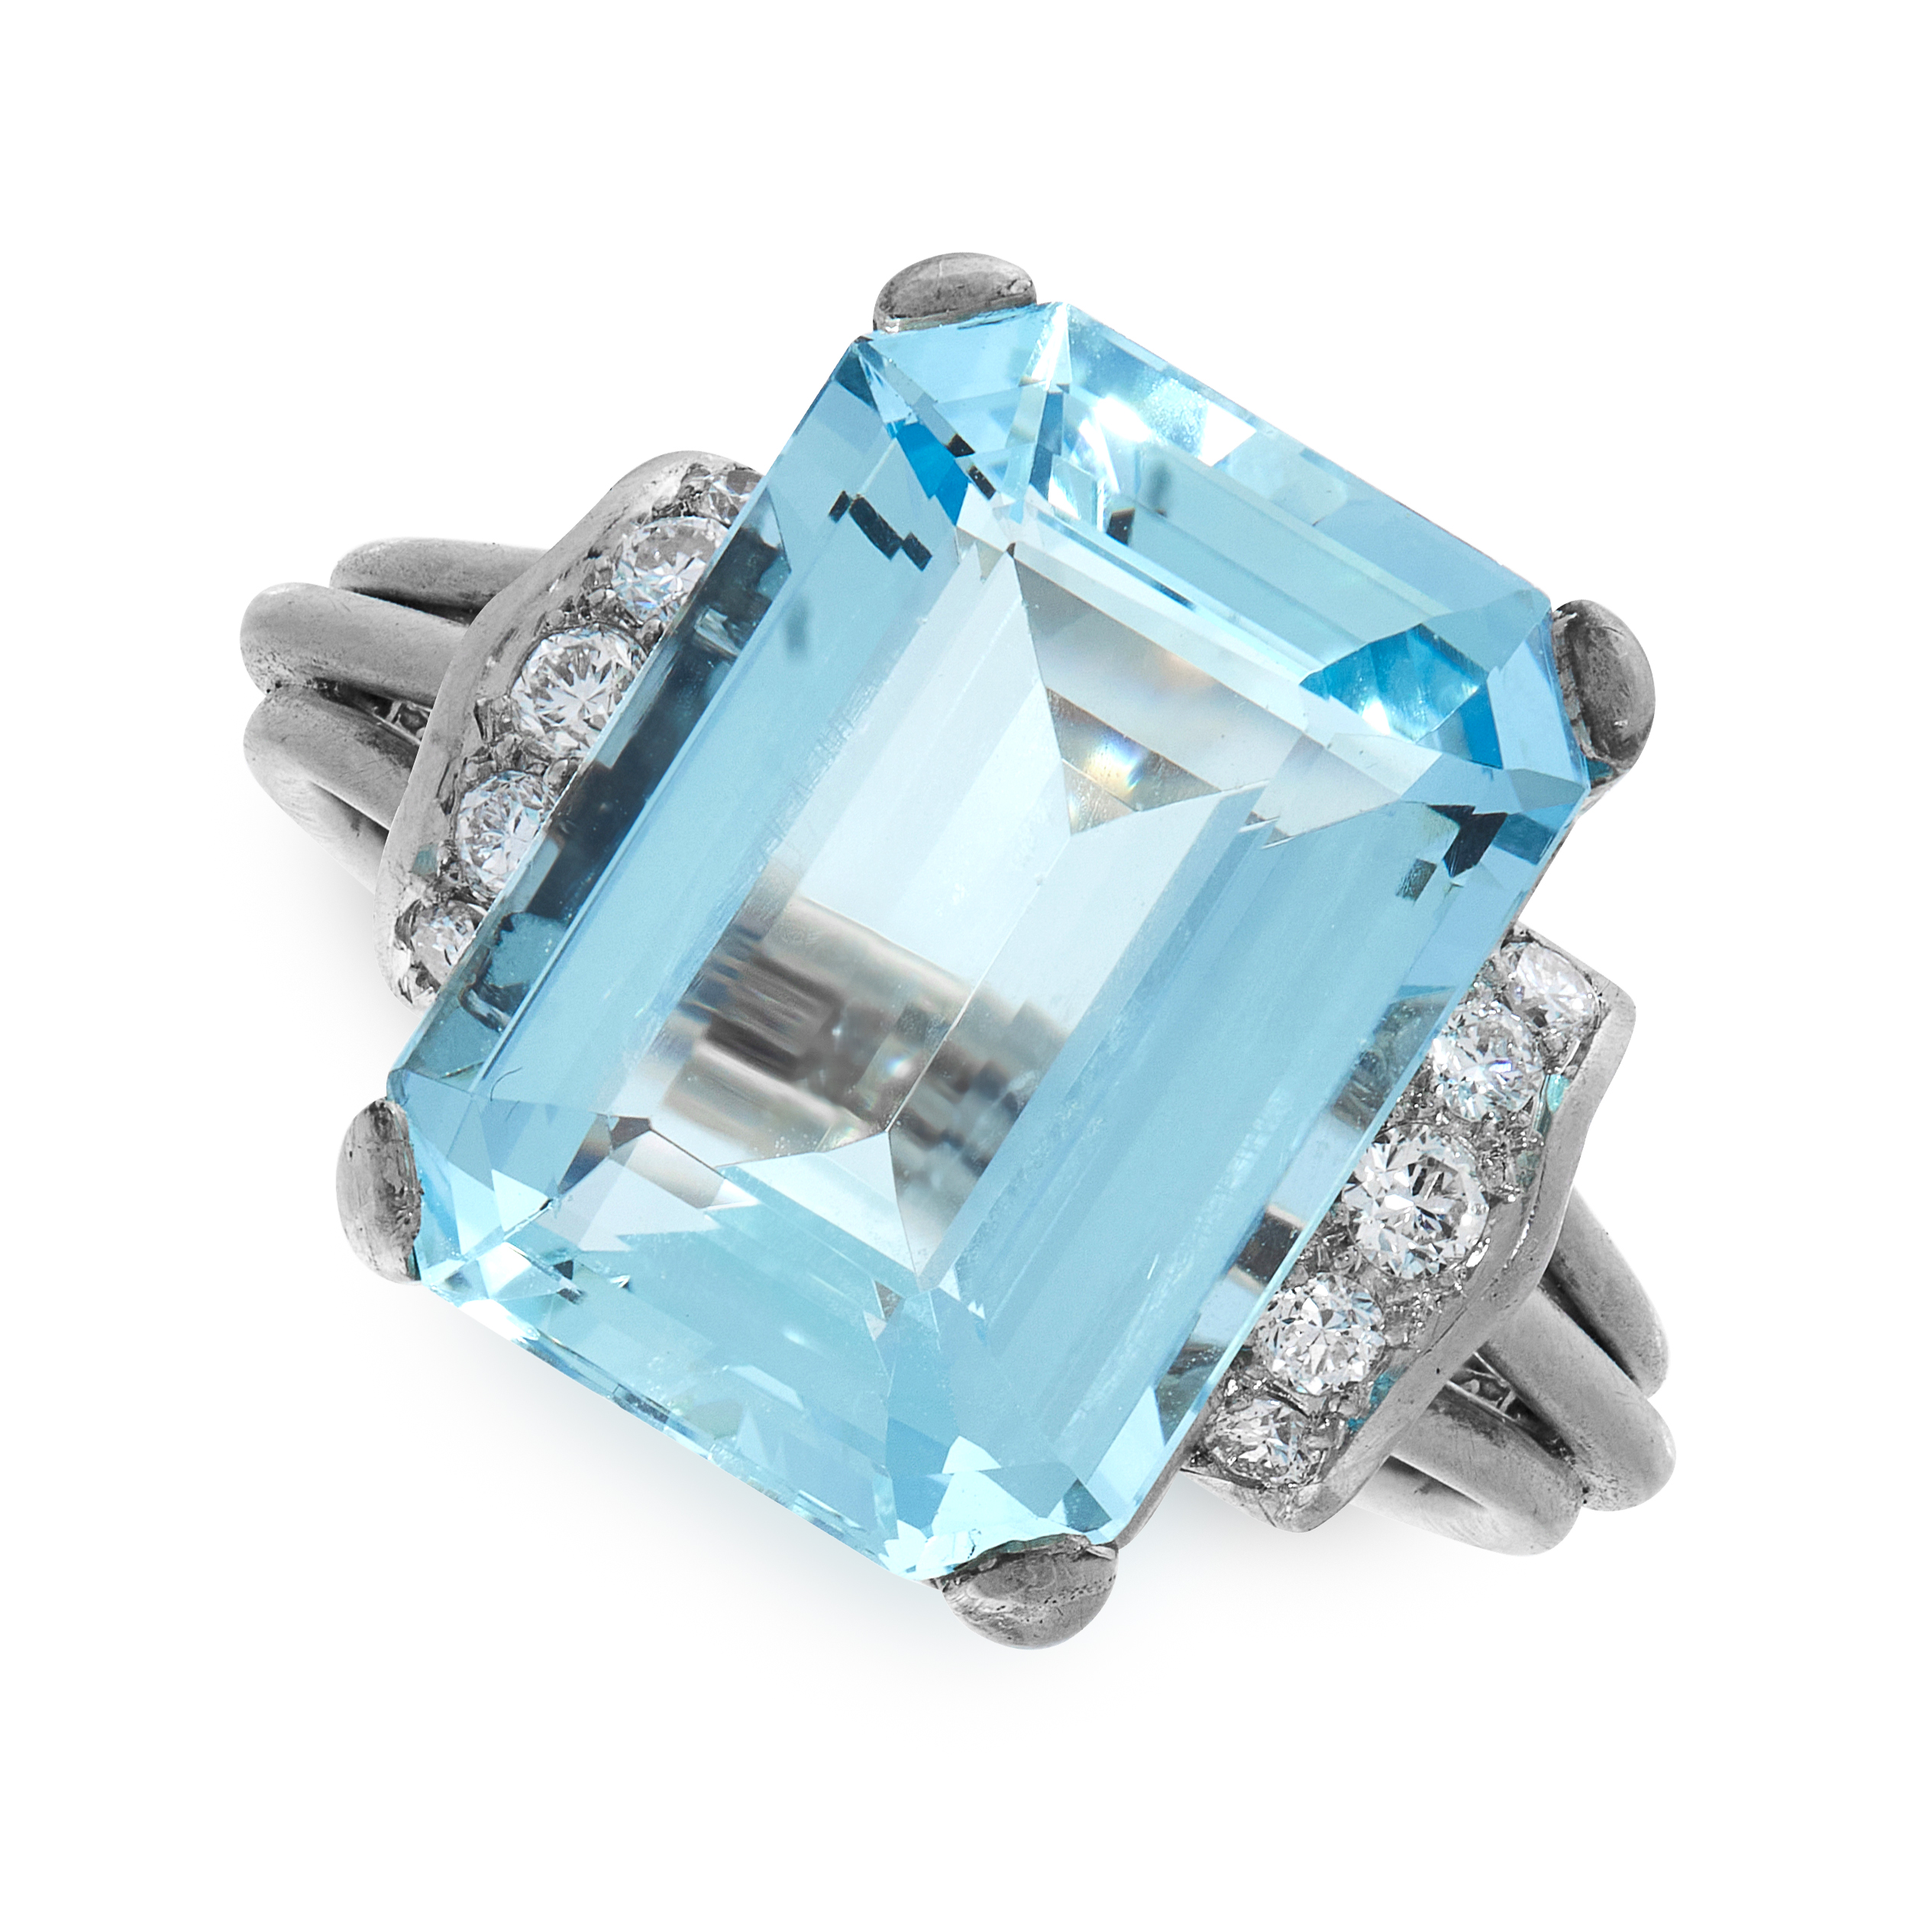 AN AQUAMARINE AND DIAMOND RING in 14ct white gold, set with an emerald cut aquamarine of 12.88